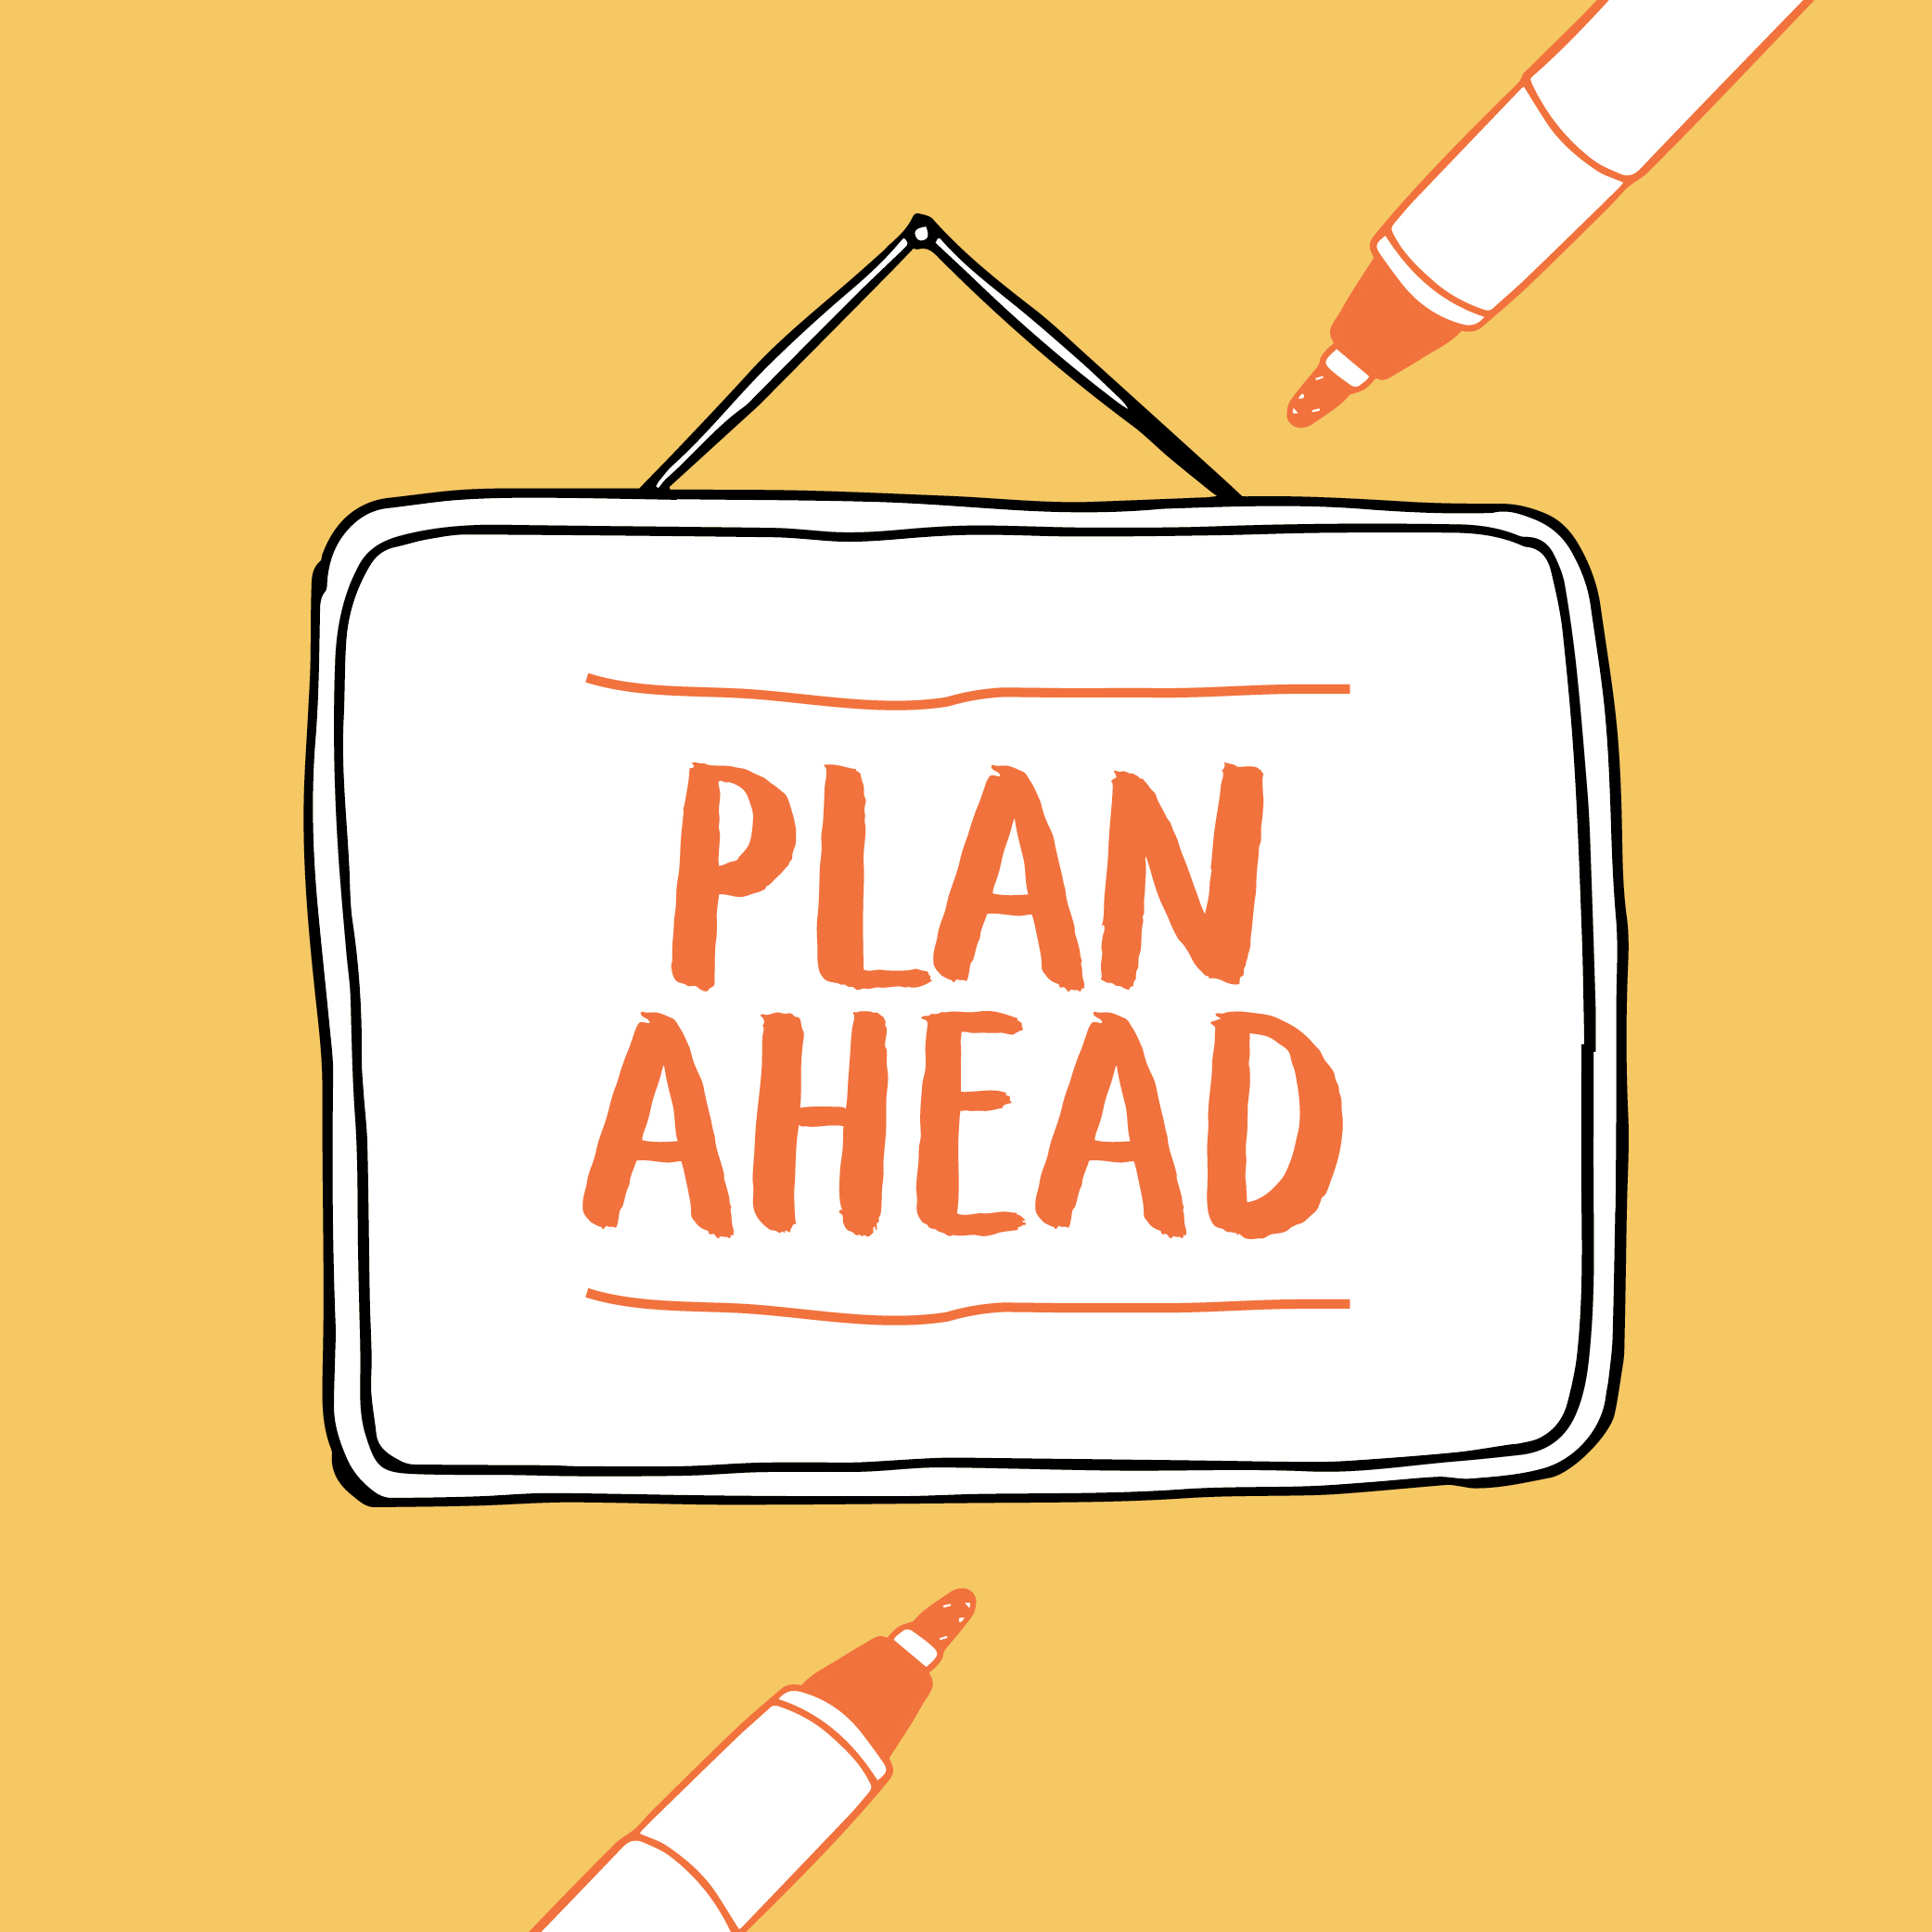 2016 goal #3: Plan ahead